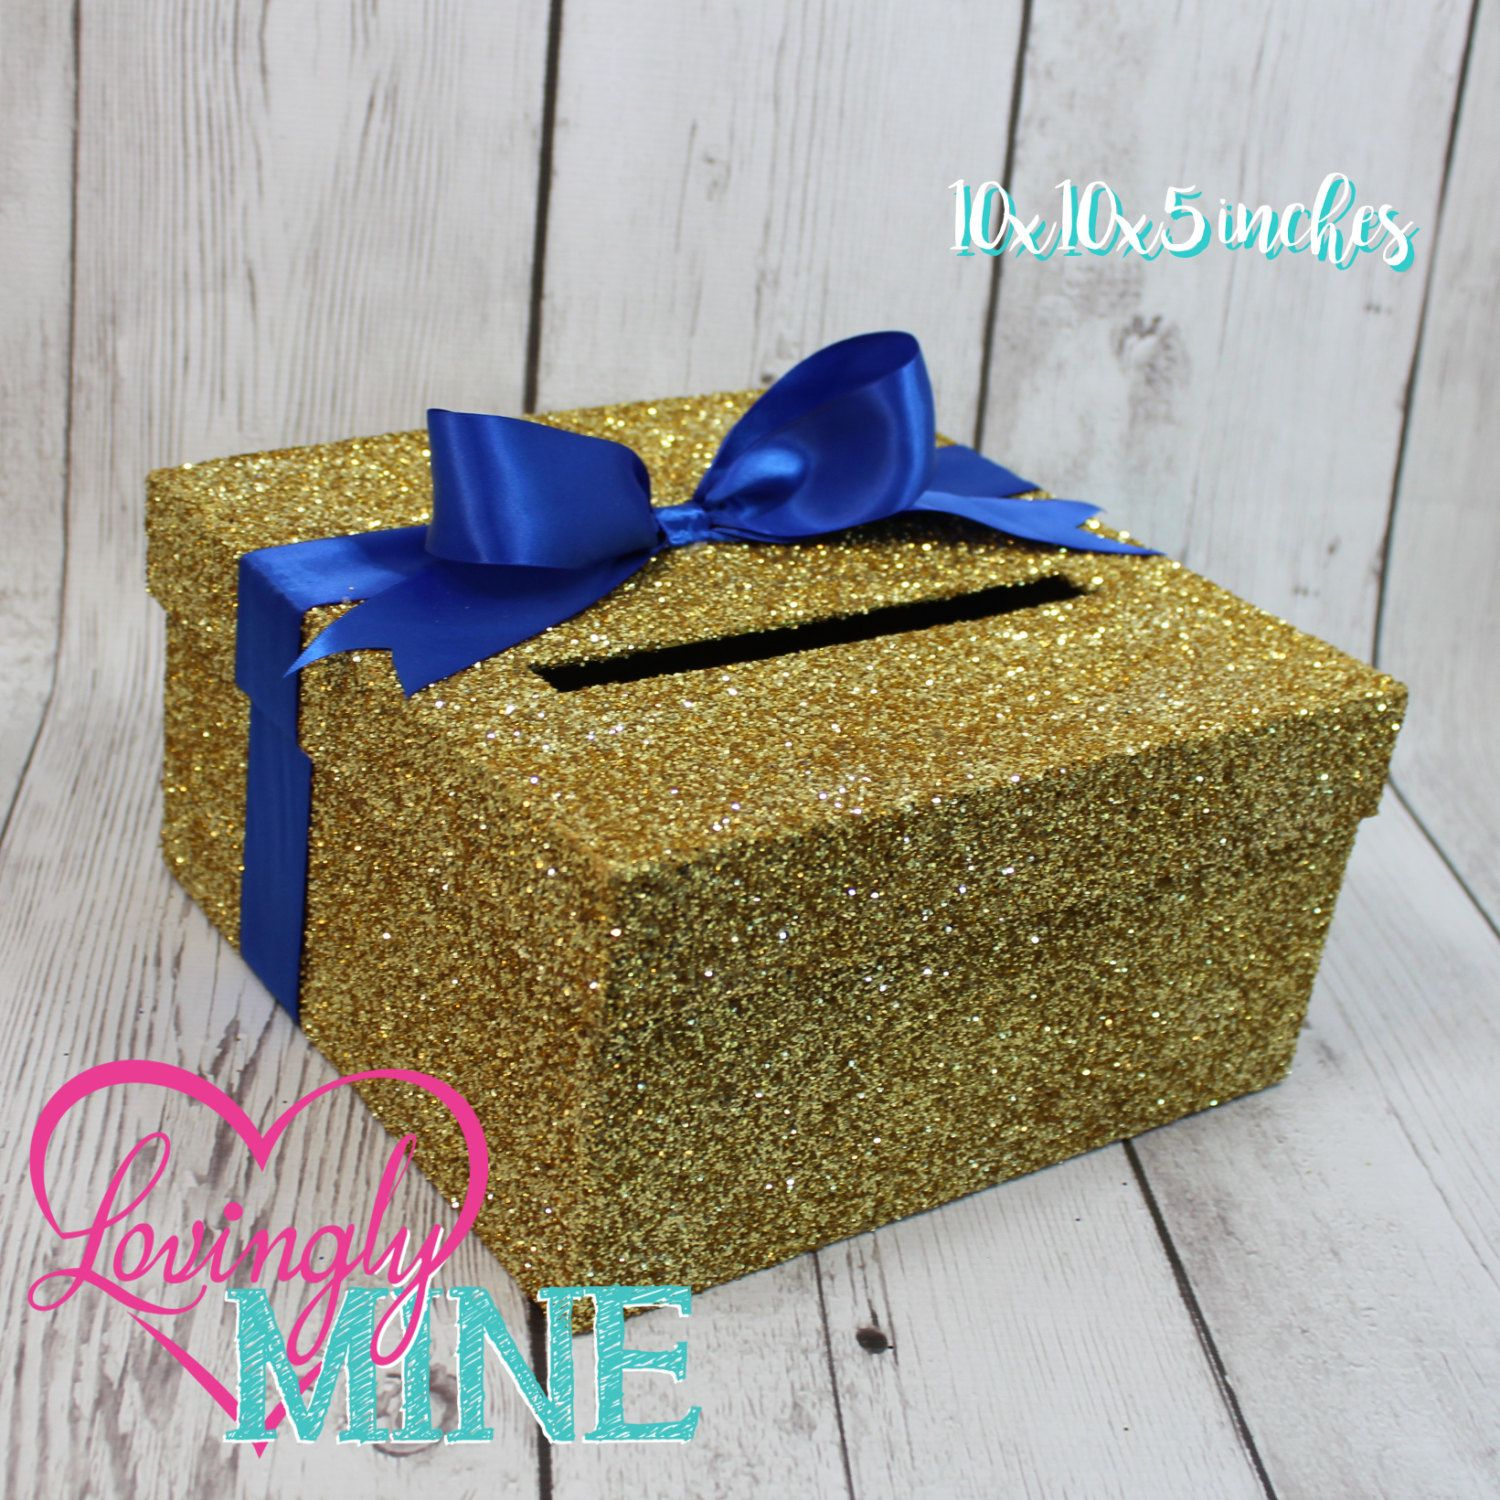 Cardbox Glitter Gold And Royal Blue Gift Money Box For Any Event Baby Shower Wedding Bridal Birthday Party Sweet 16 By Lovinglymine On